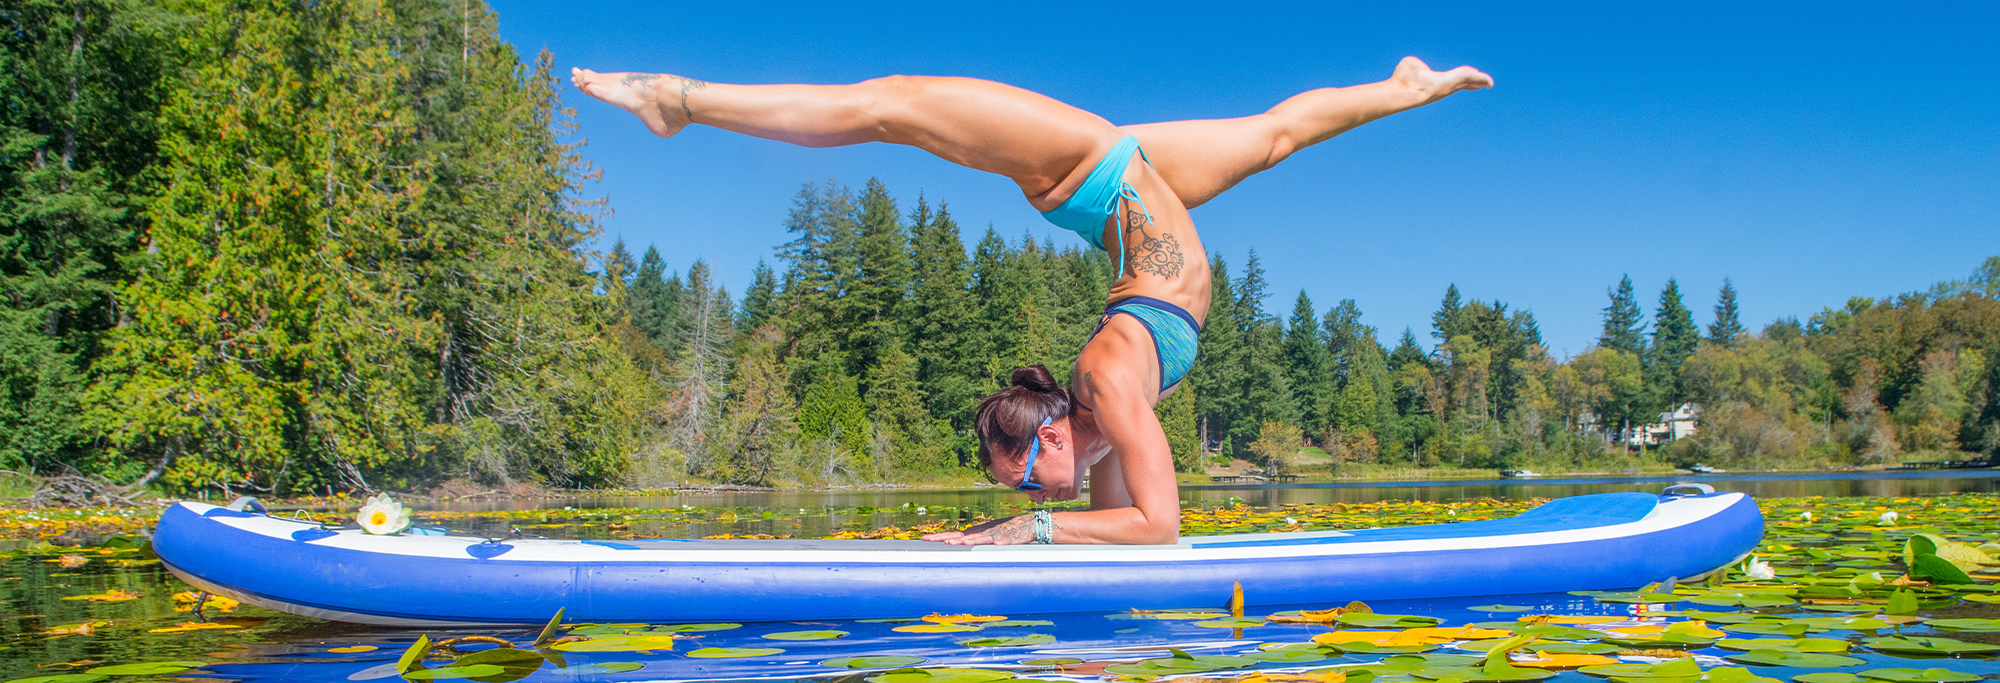 Lindsay in a forearm stand on her paddleboard in a lake